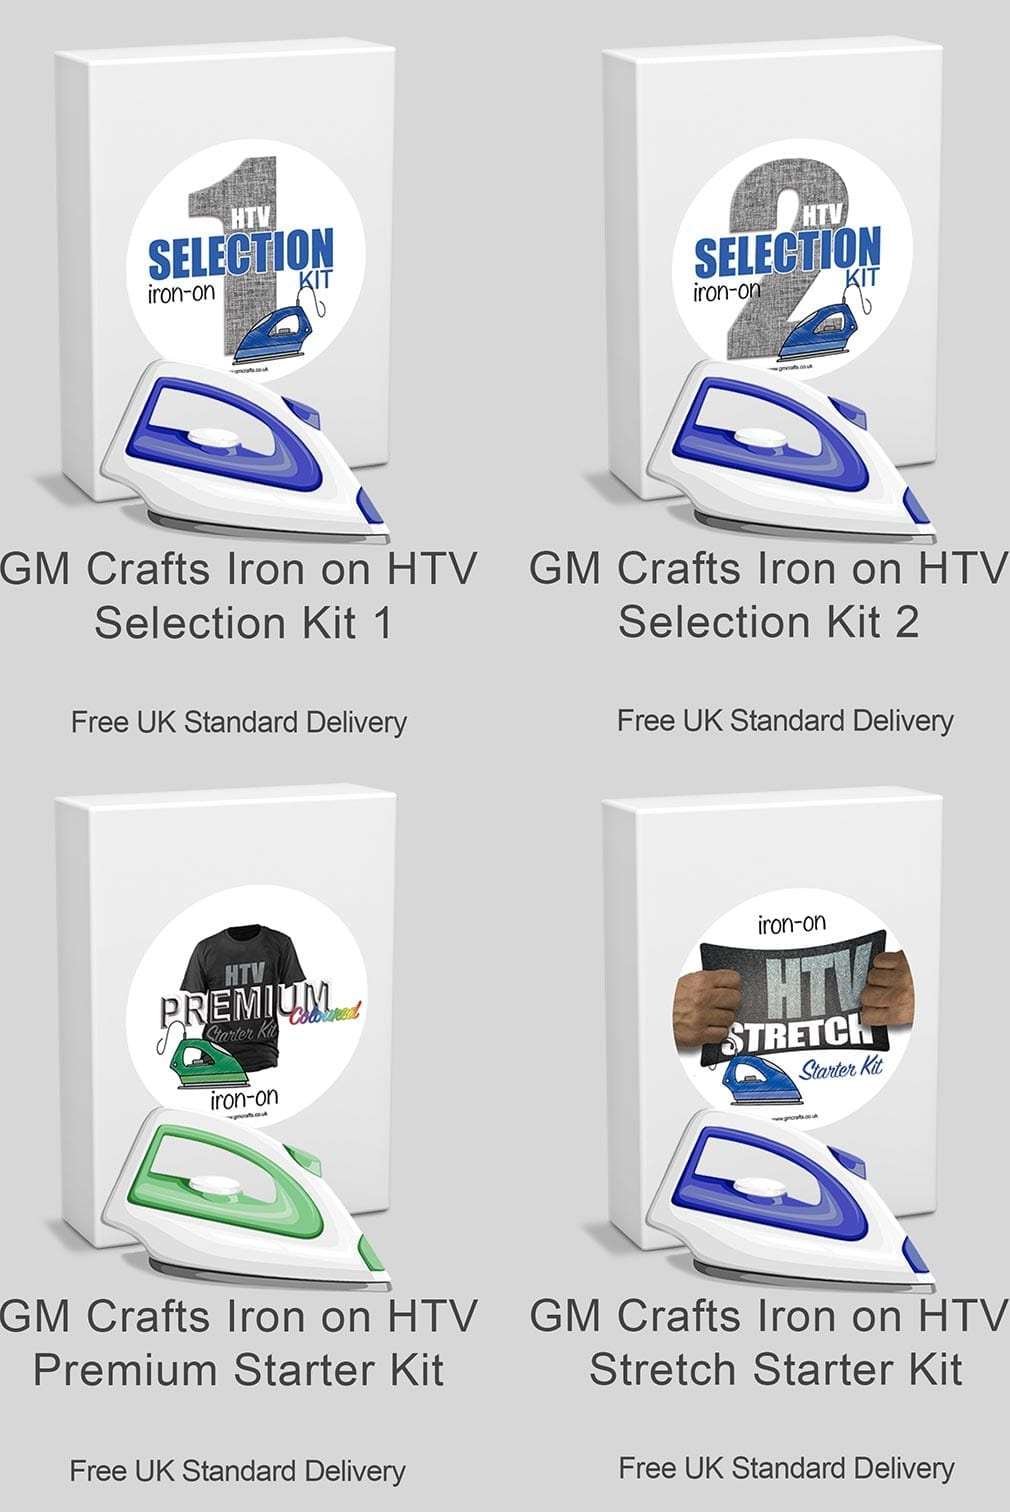 Mobile-Starter-Kits-Page-May-20-2